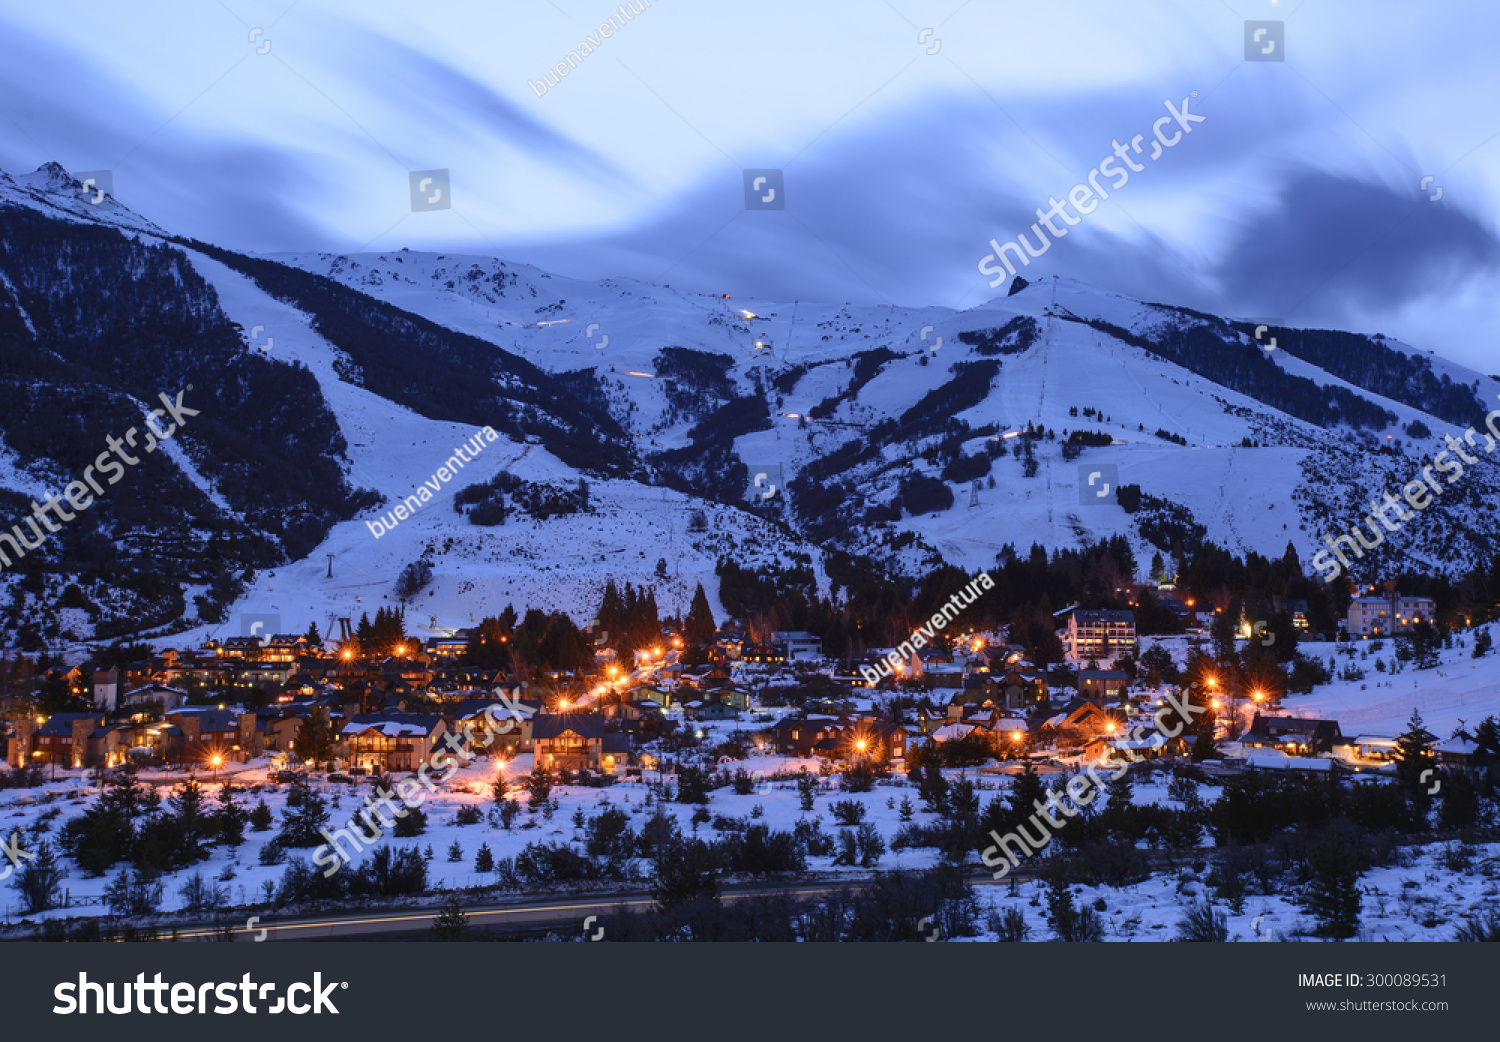 Circuito Chico Bariloche : Cathedral ski resort bariloche argentina stock photo edit now